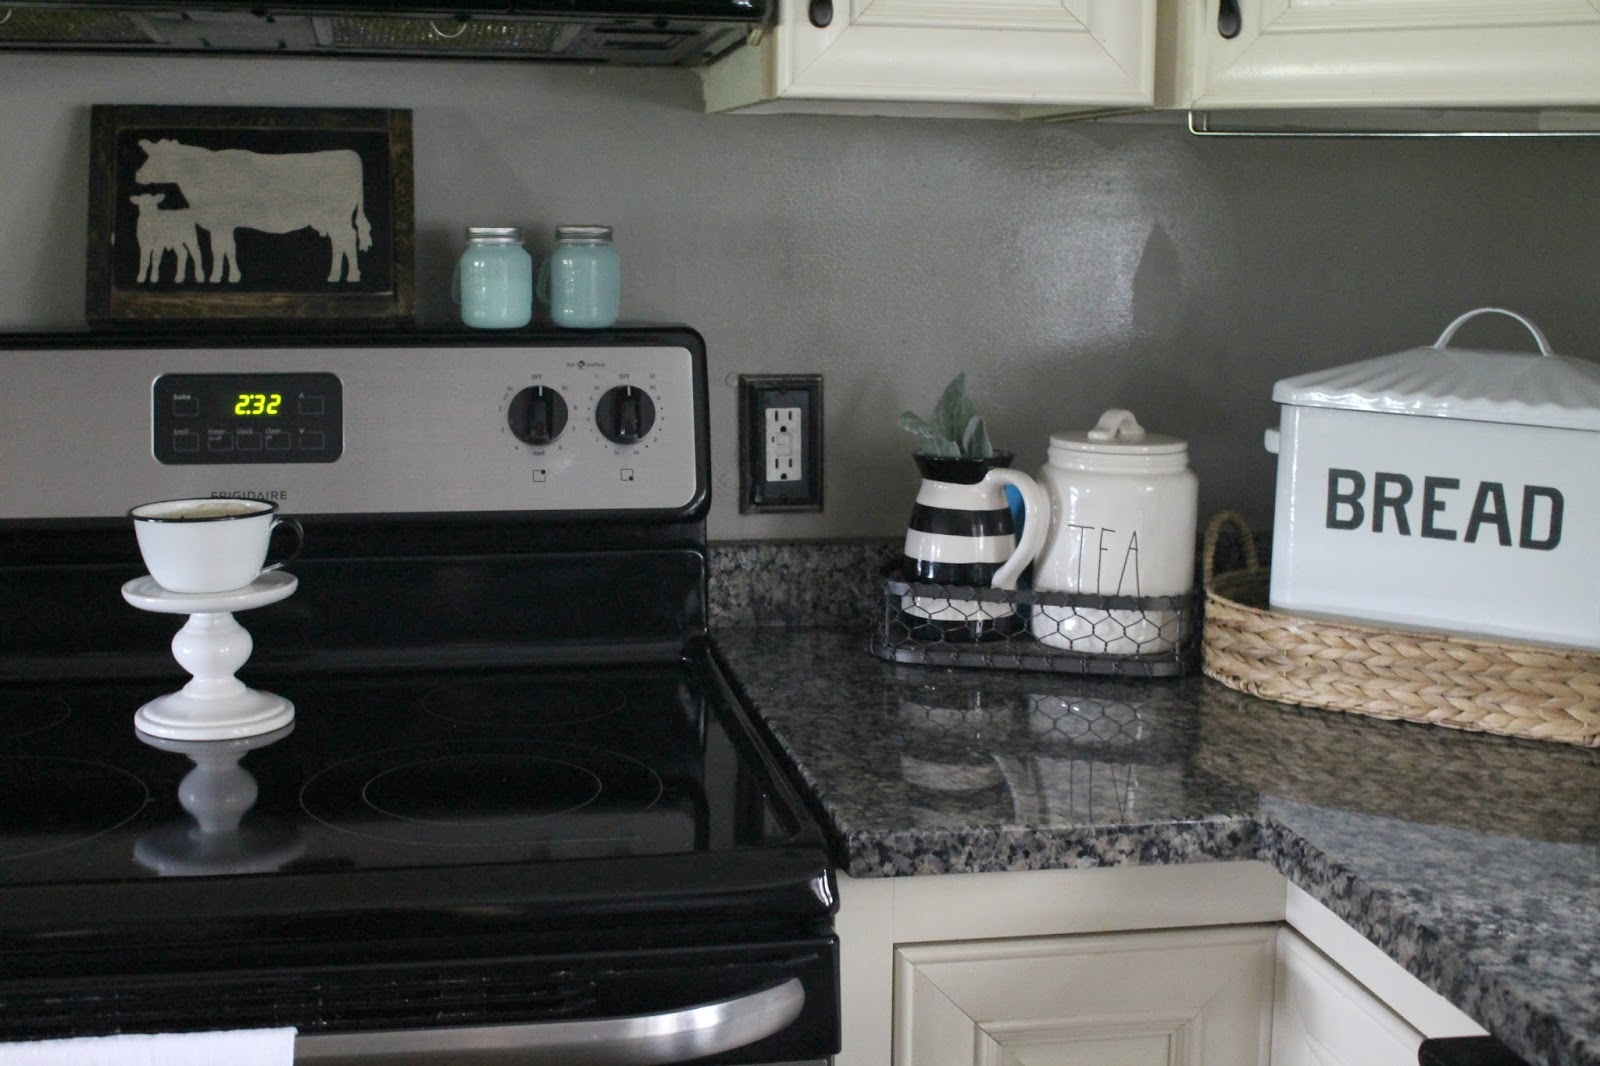 Kitchen Outlet Covers Beauteous 3 Big Impact Kitchen Updates For Less Then $50  The Glam Farmhouse Inspiration Design